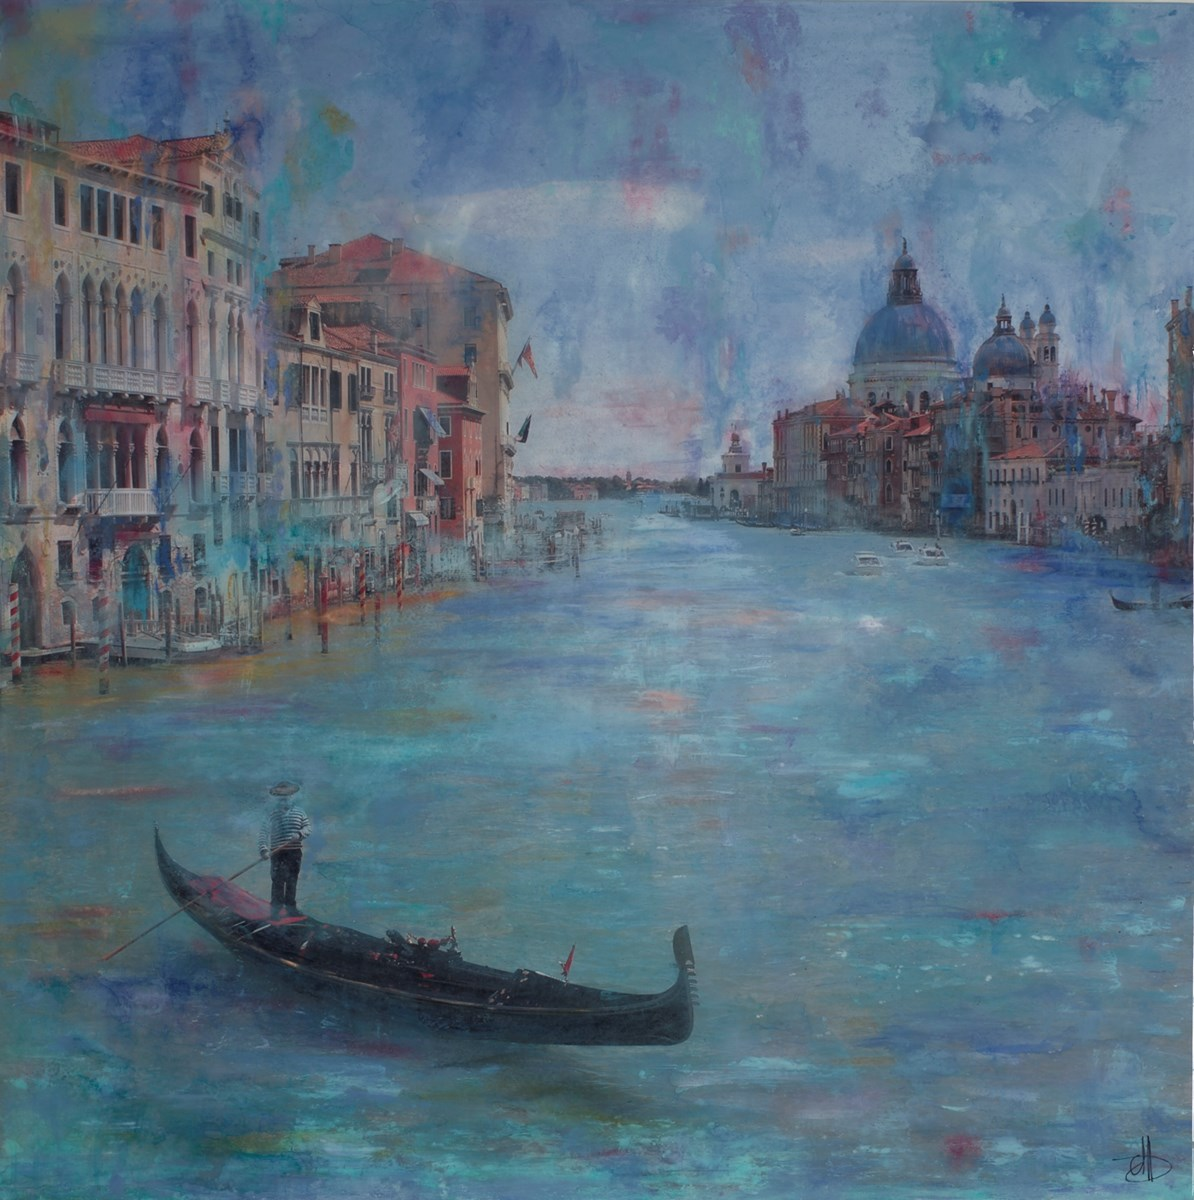 Canalasso by annie blanchet rouze -  sized 36x36 inches. Available from Whitewall Galleries